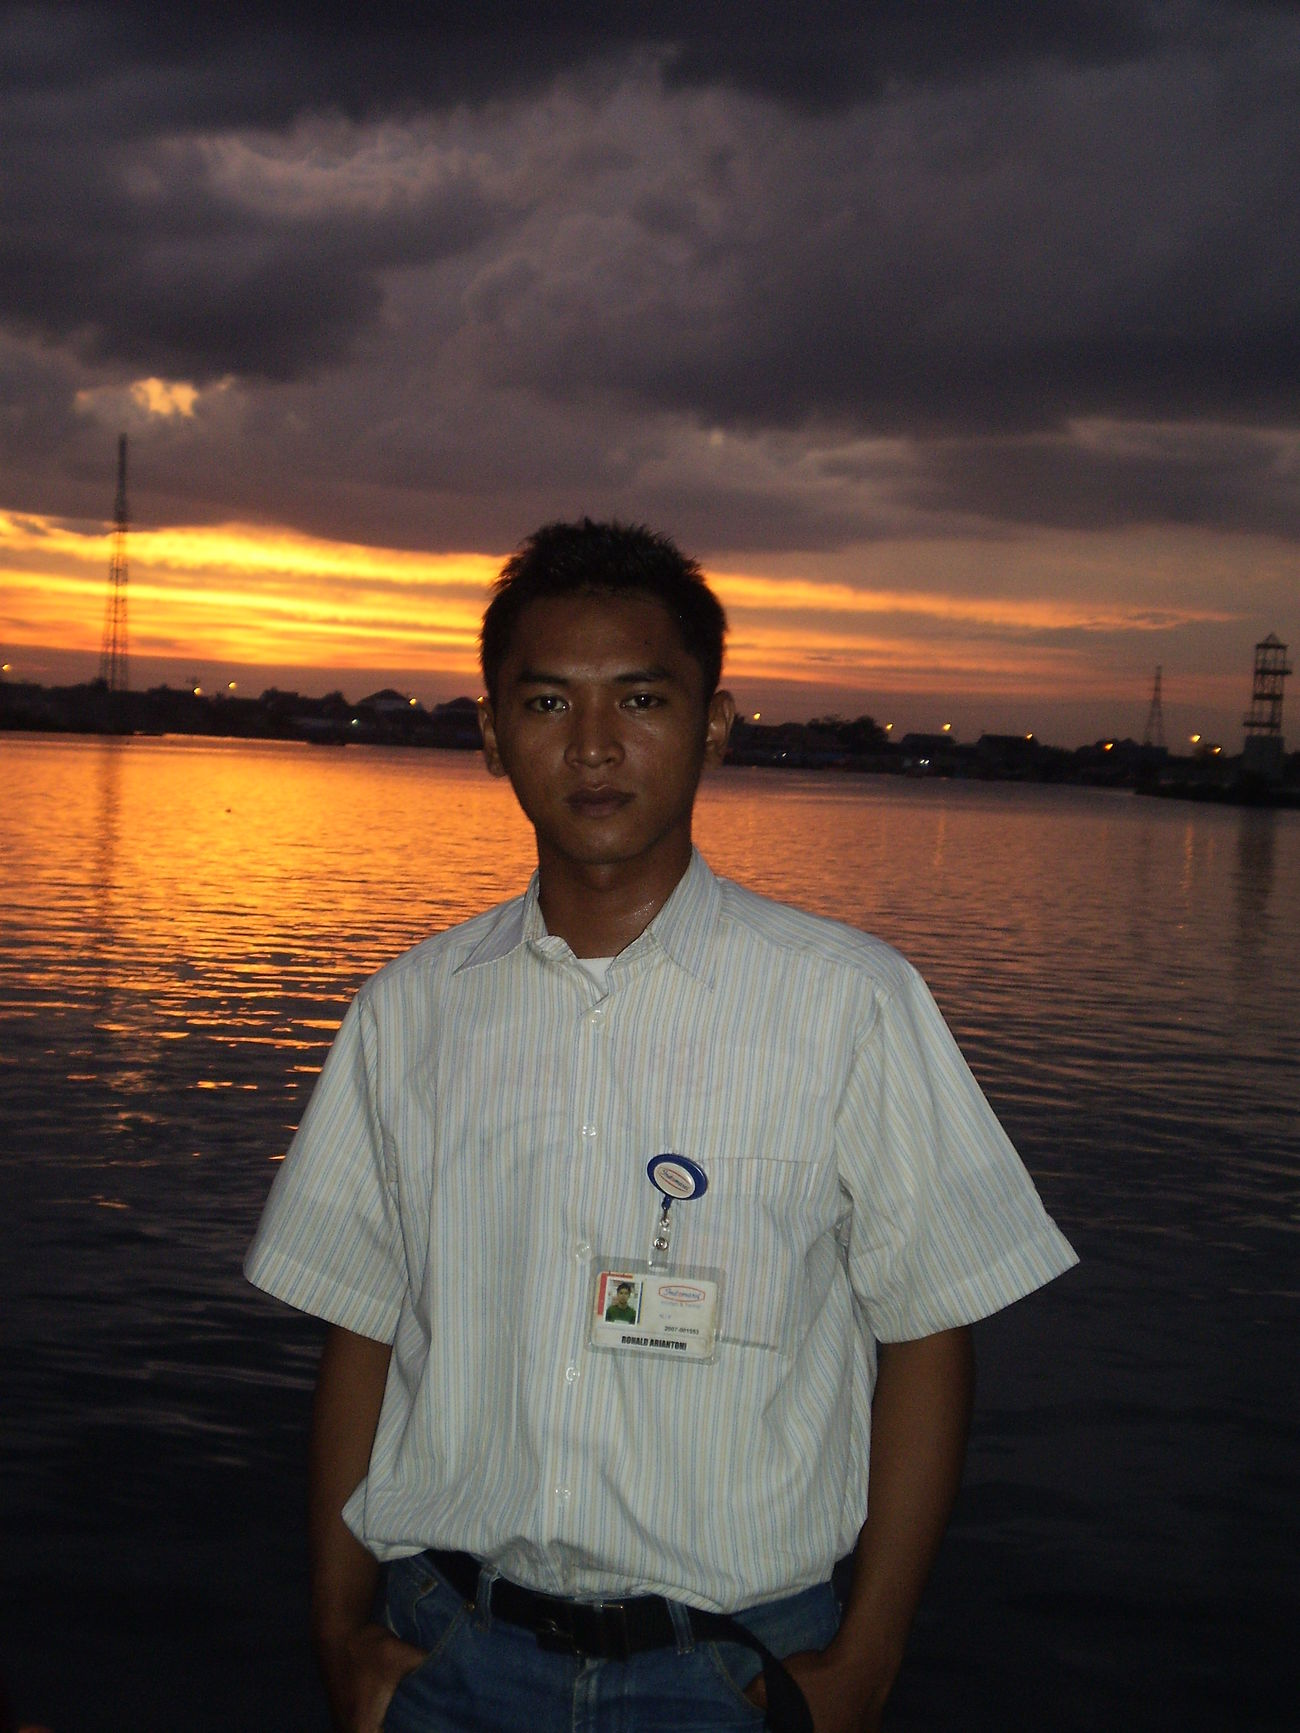 My old photo Sunset Lake Ogan Permata Indah Palembang-Indonesia